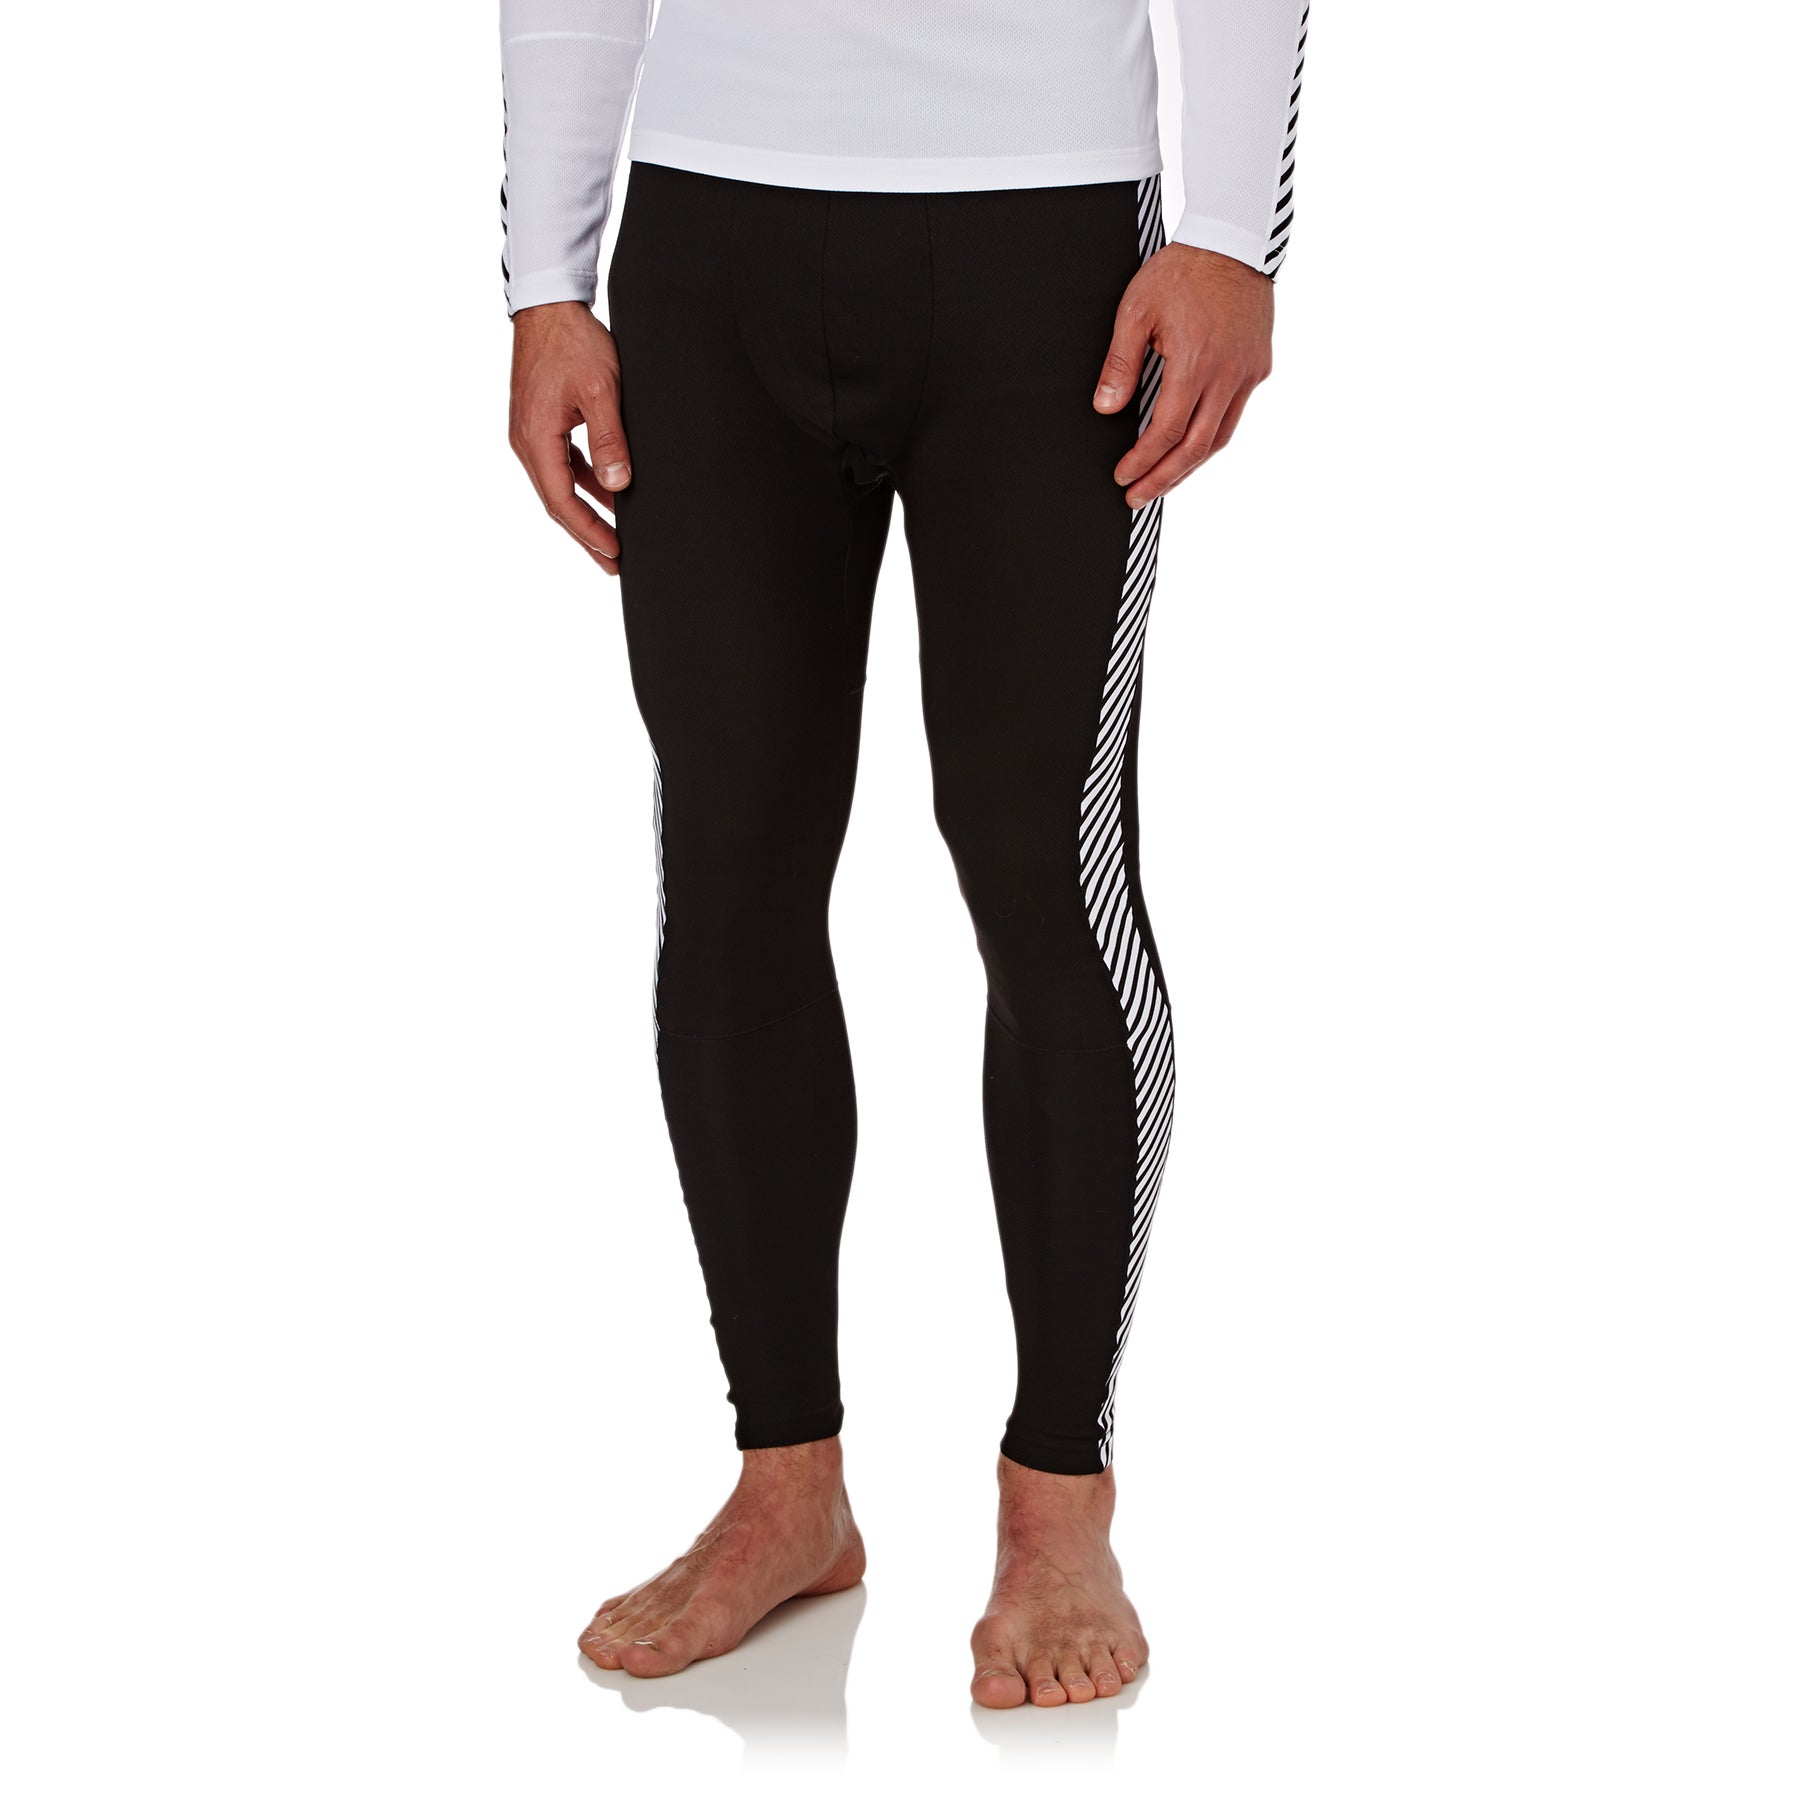 Helly Hansen Lifa Base Layer Leggings - Black